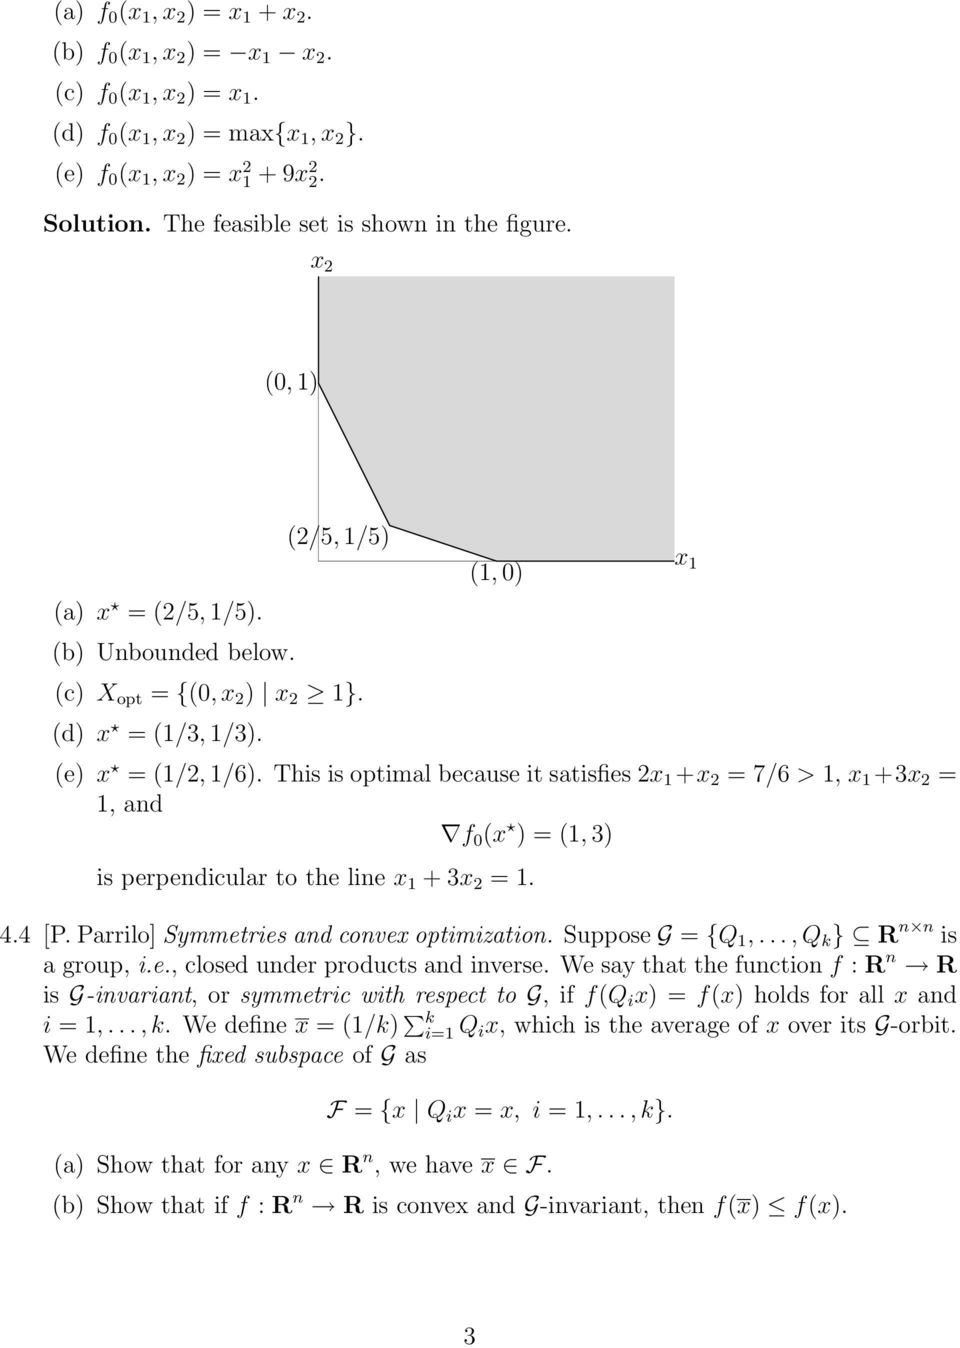 ee364a homework 3 solutions